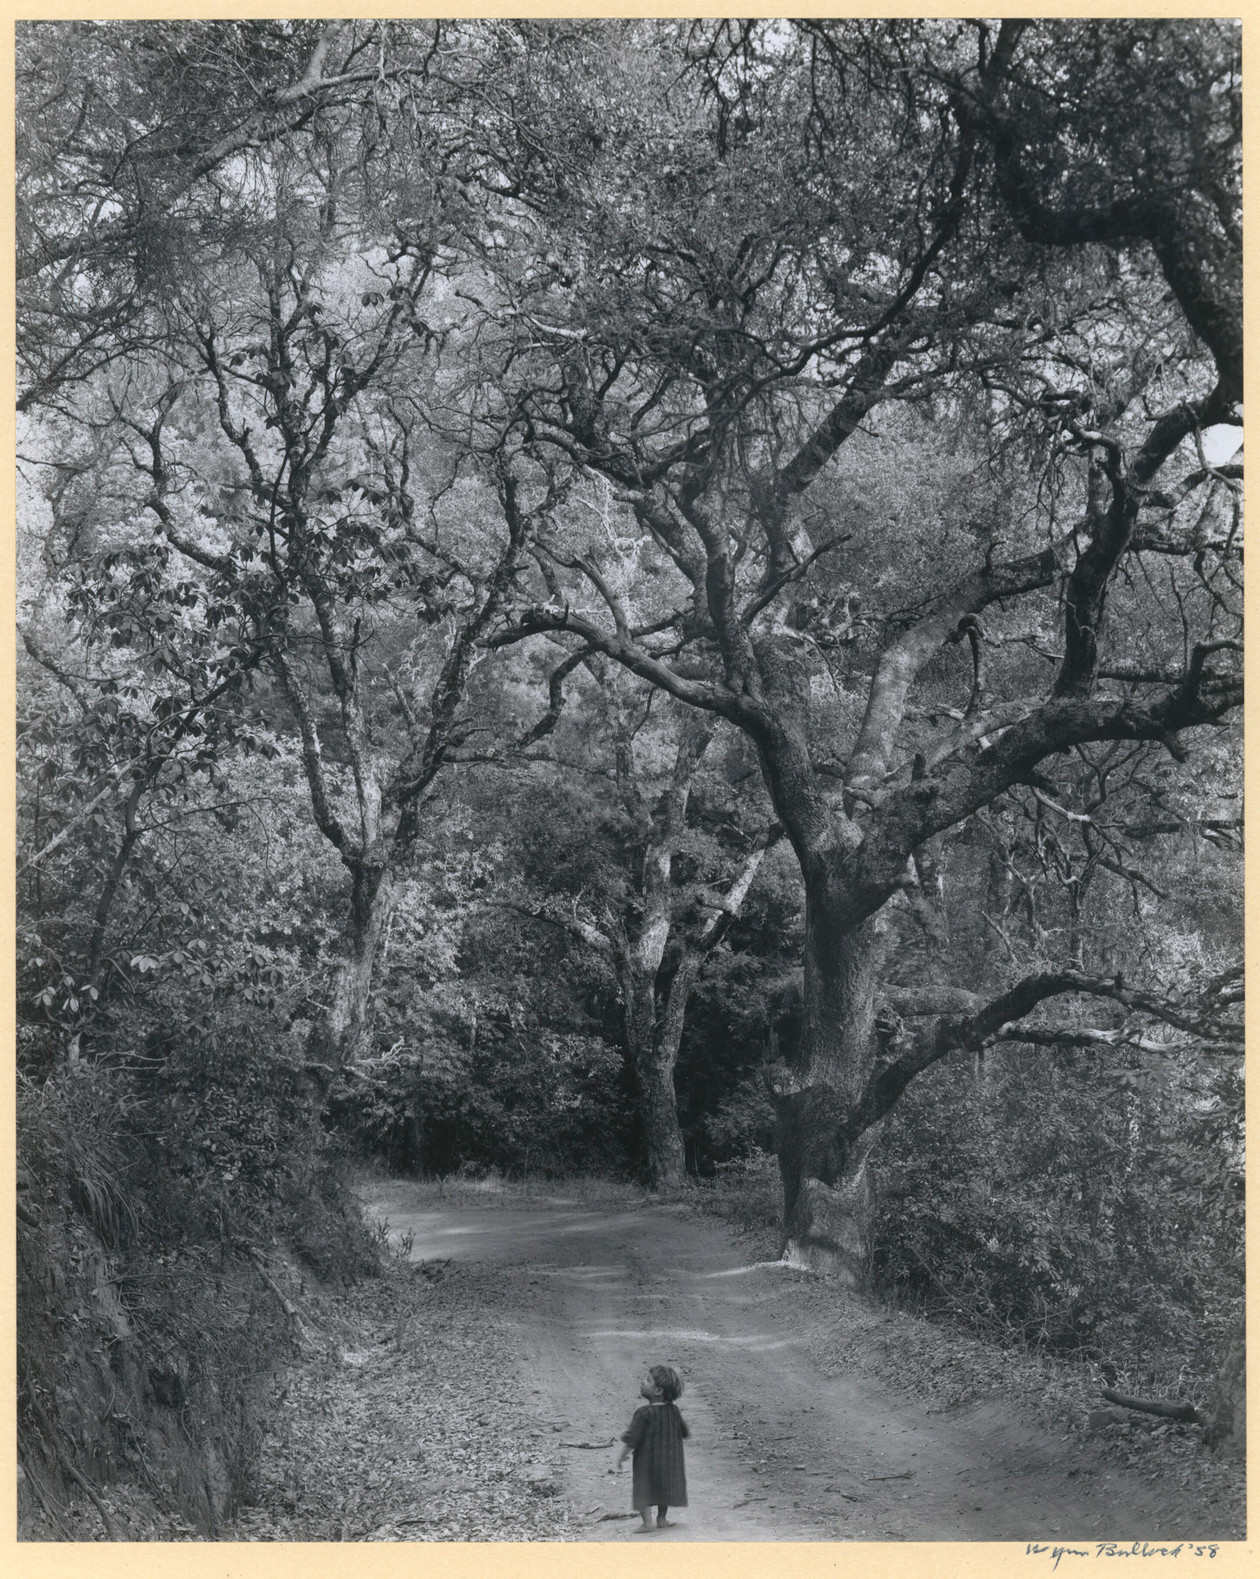 Child on Forest Road (1958) by Wynn Bullock